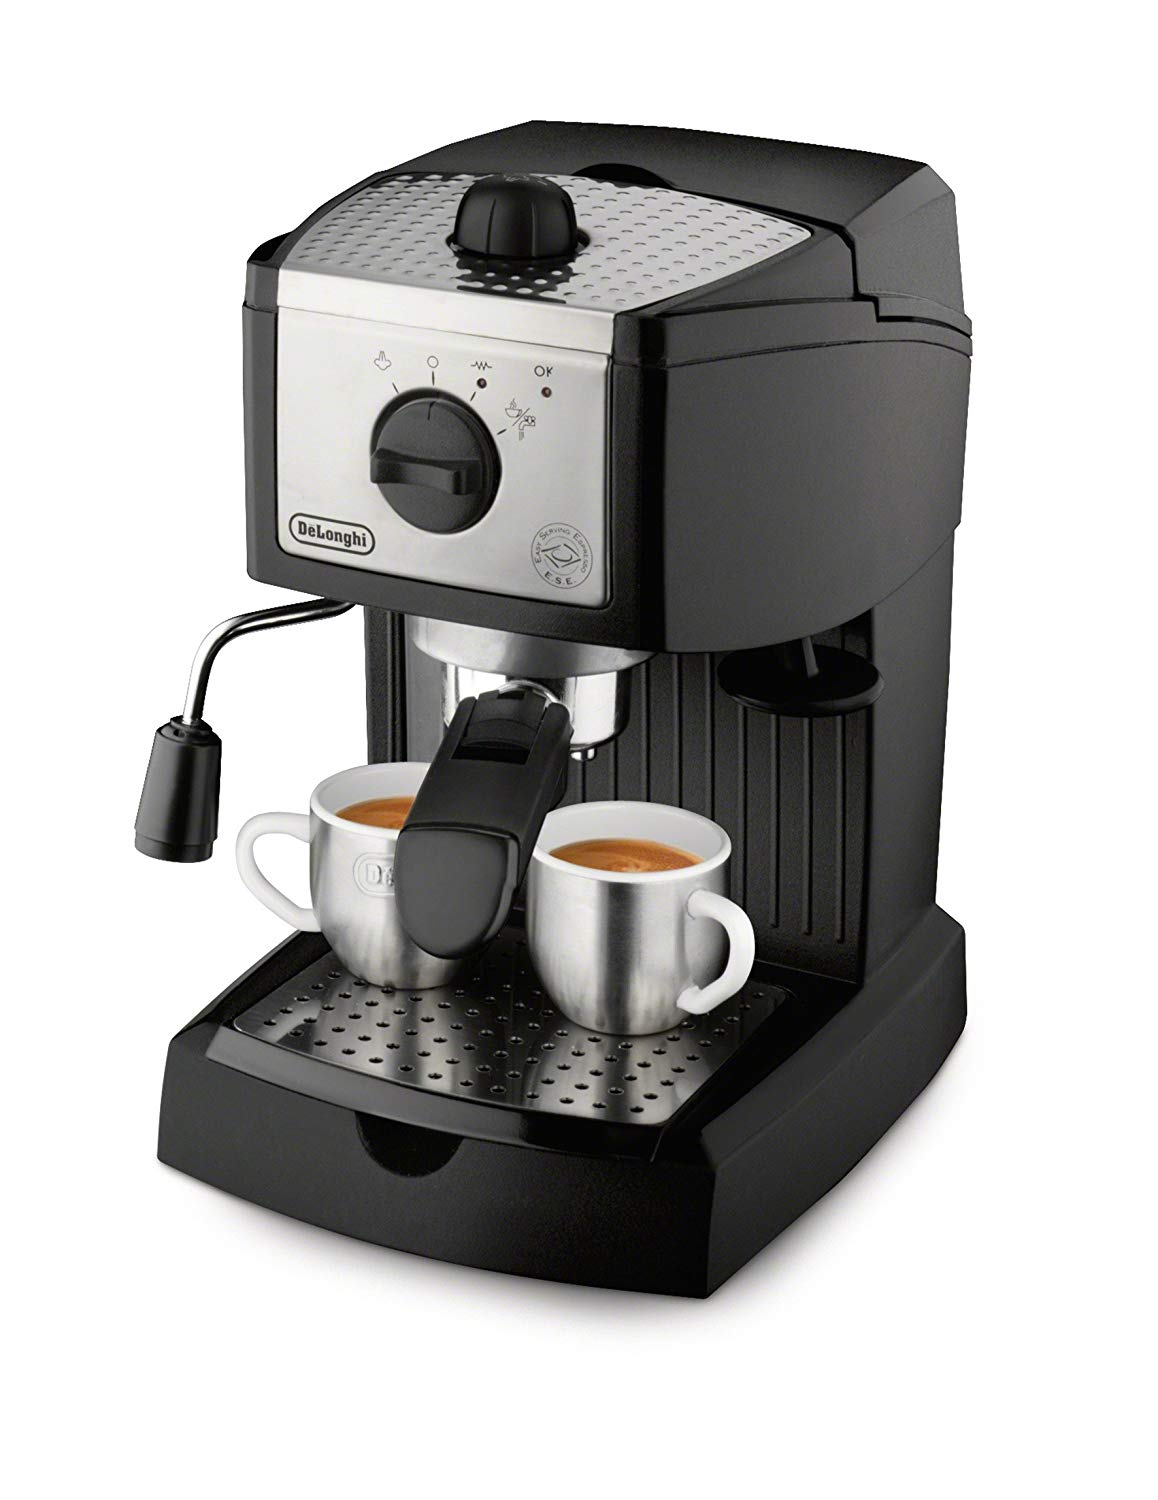 DeLonghi EC155 Espresso and Cappuccino Maker